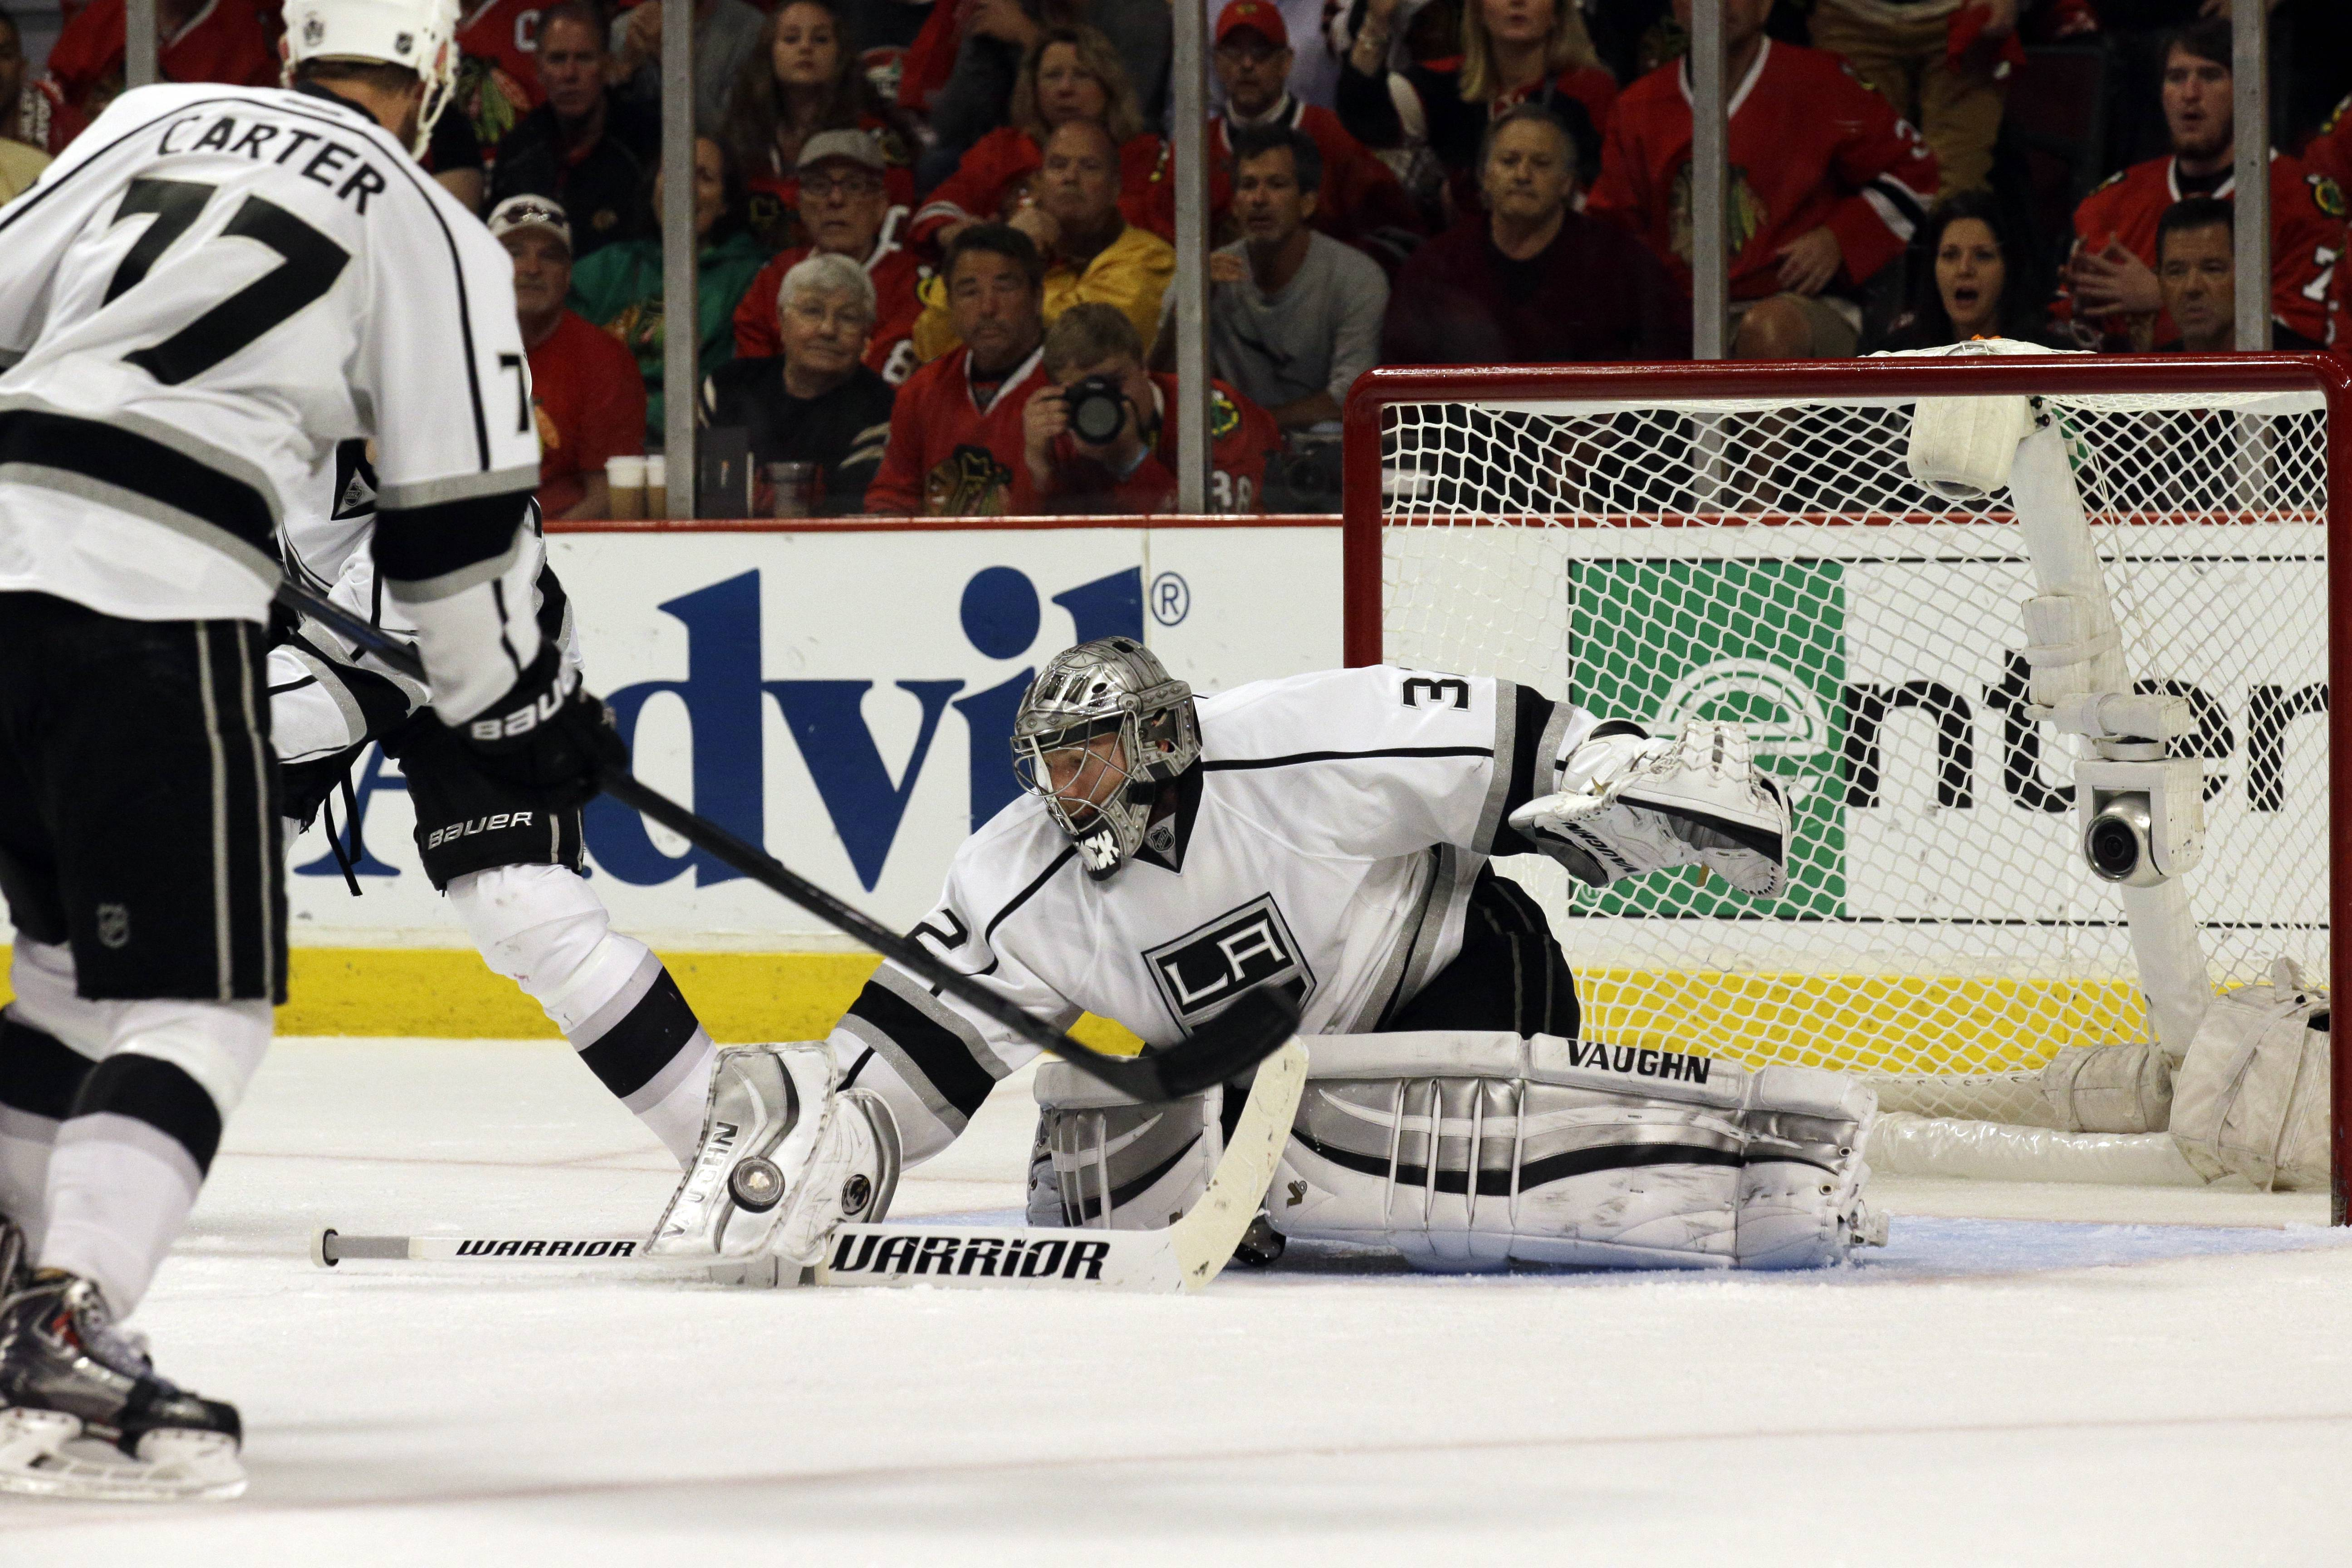 Los Angeles Kings goalie Jonathan Quick (32) saves a goal during the second period.